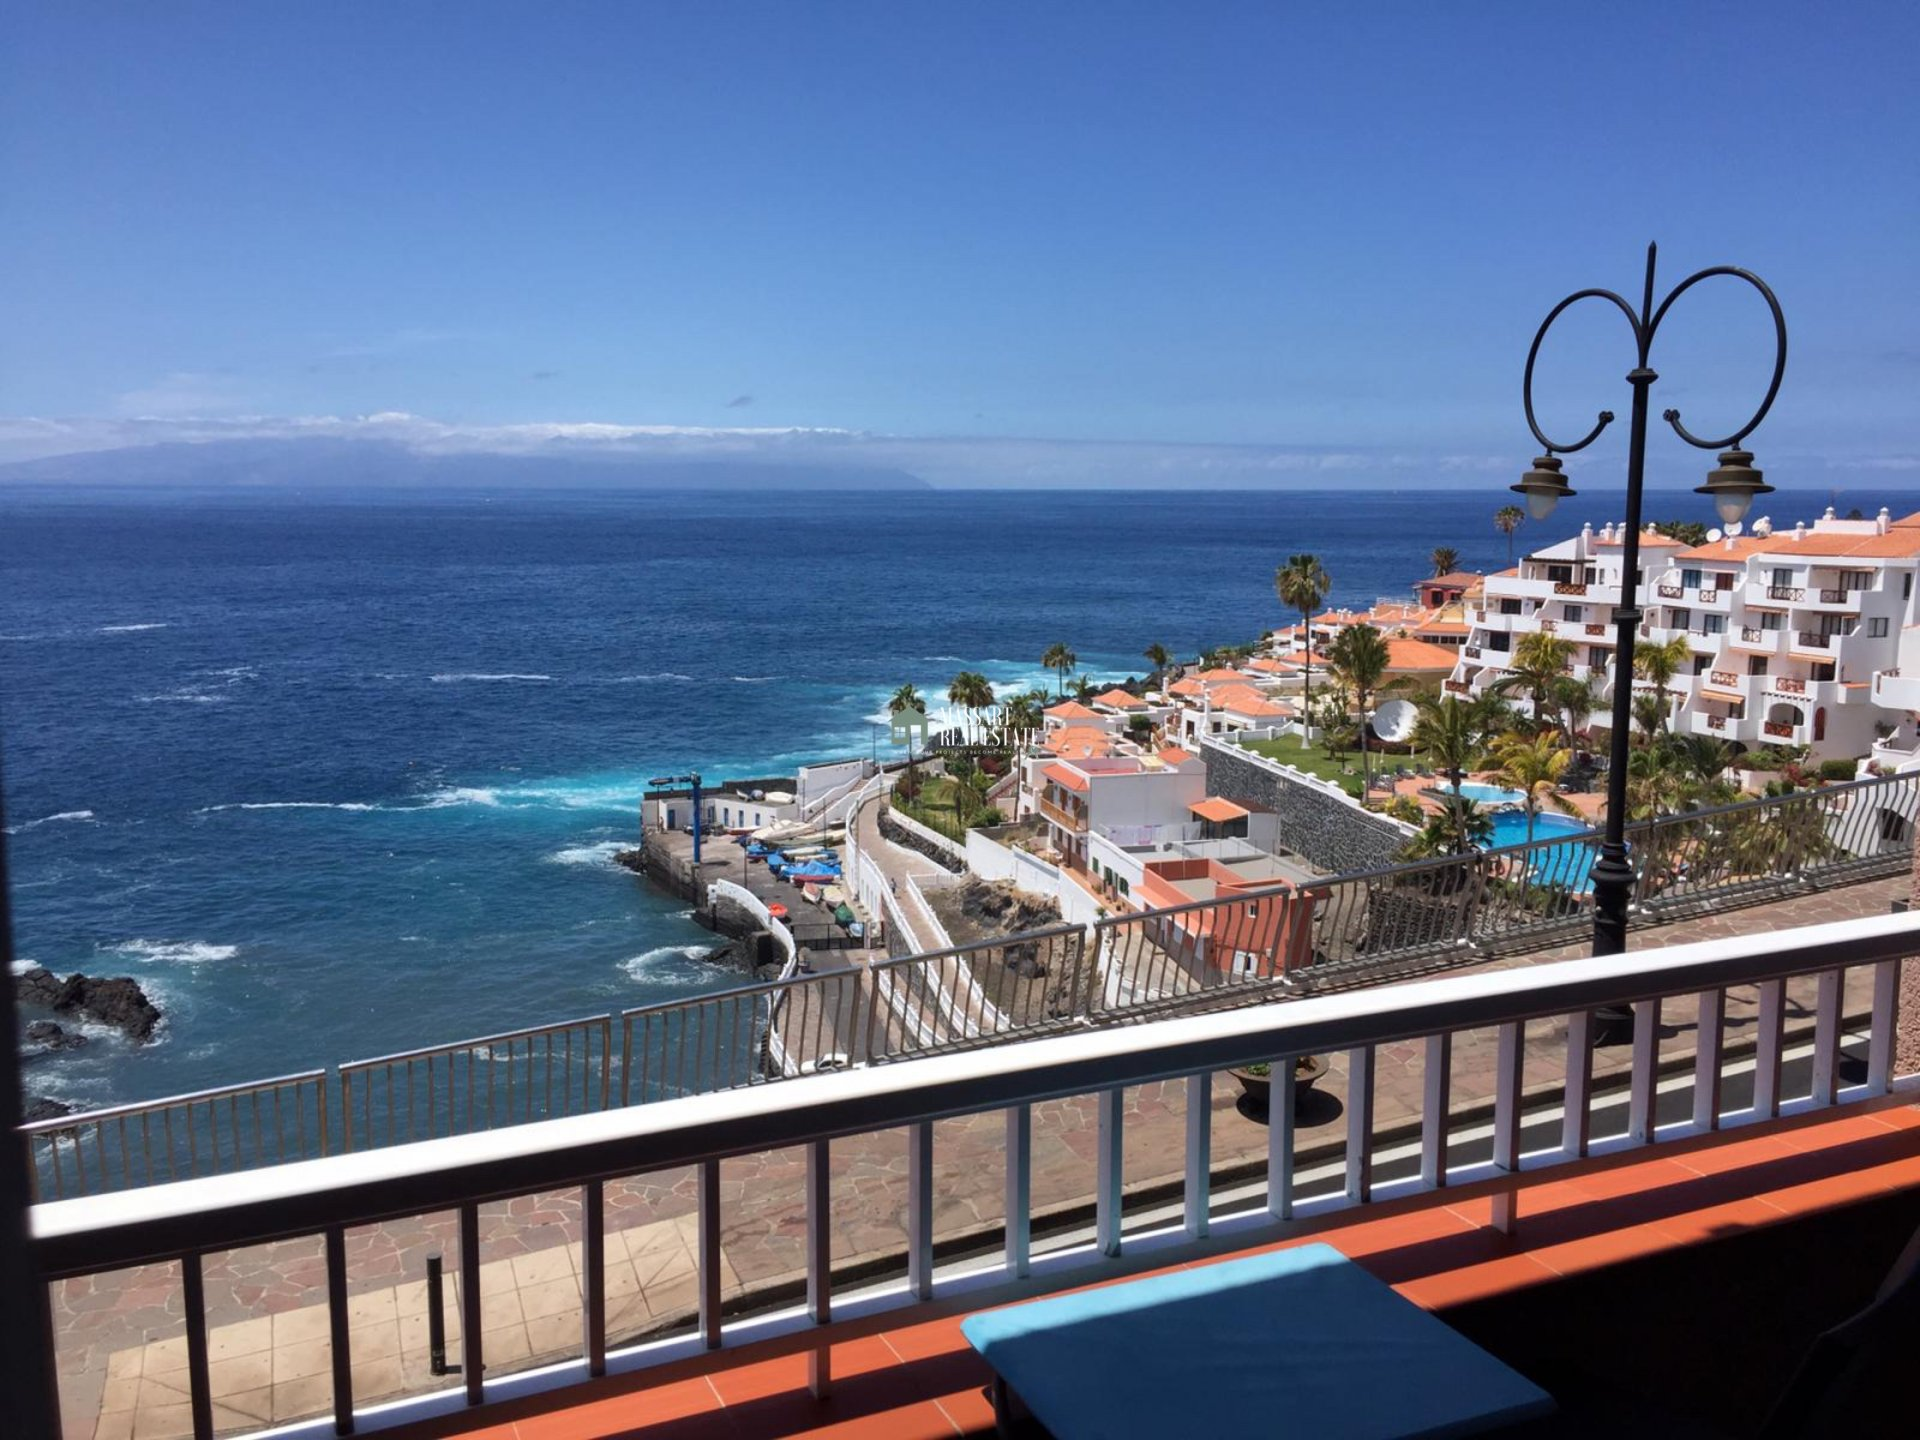 Cozy 48 m2 apartment located in Puerto Santiago and characterized by offering direct views of the sea… what a privilege!